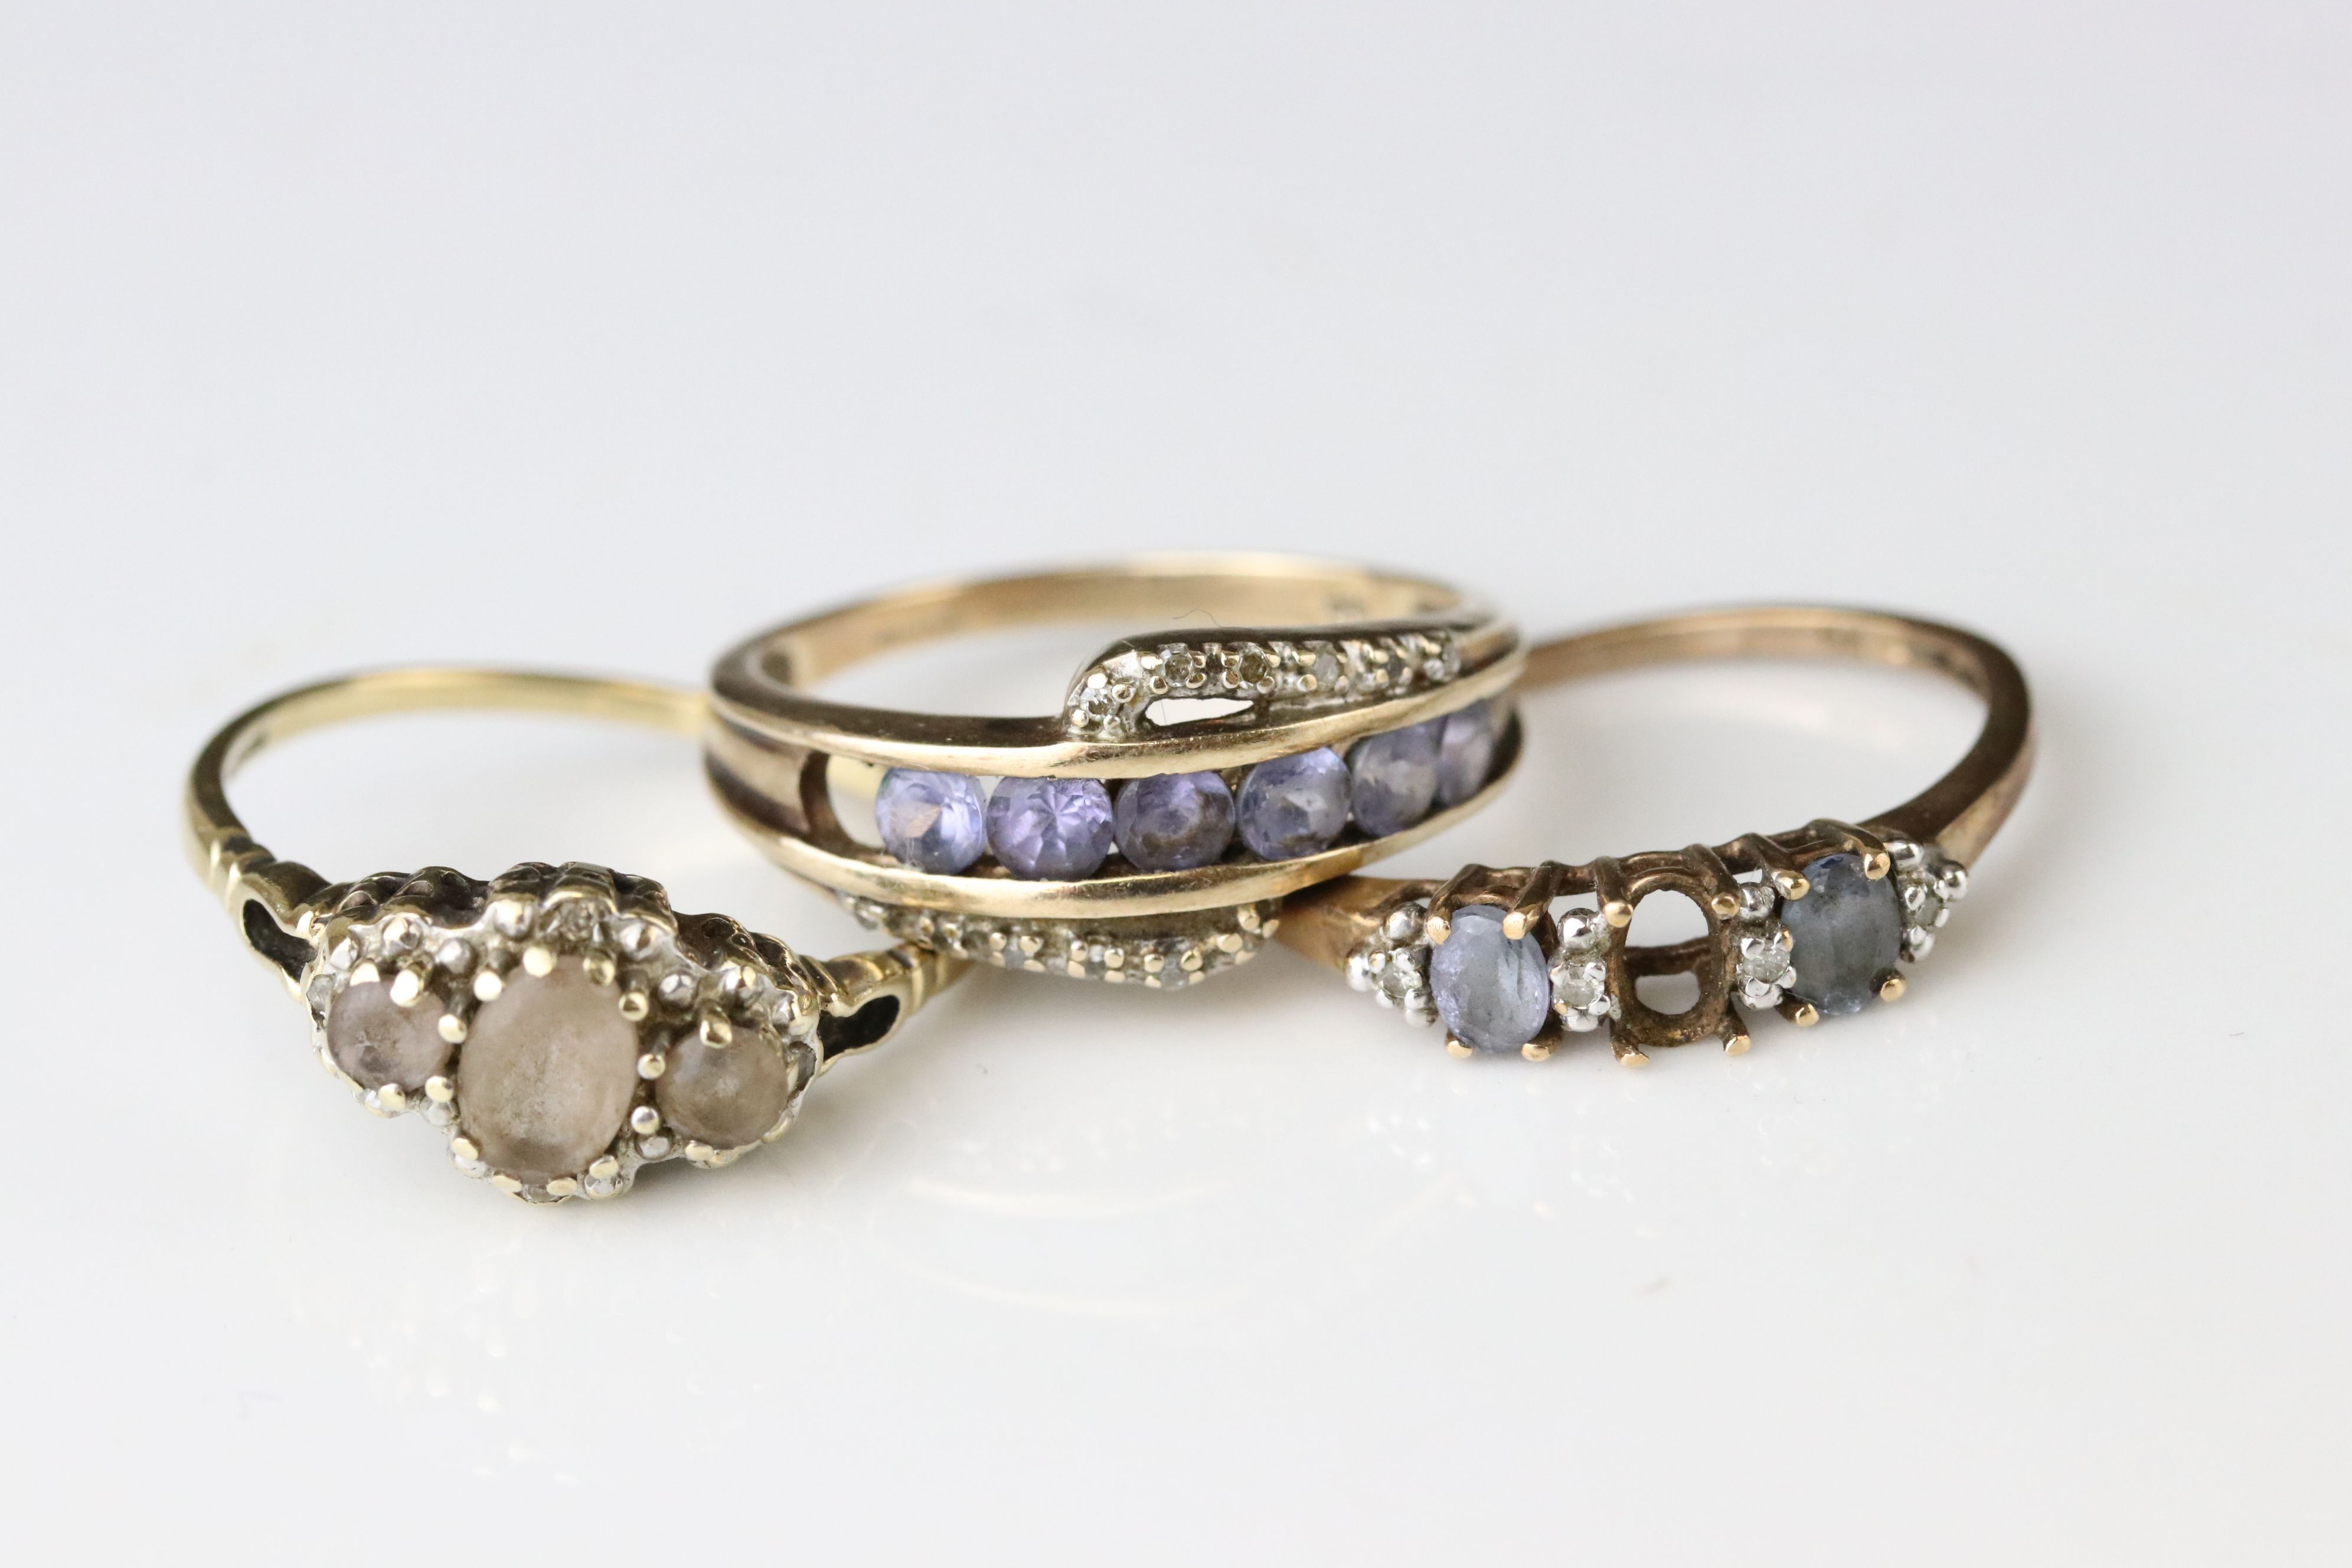 Three gem set 9ct yellow gold dress rings, all with gemstones missing